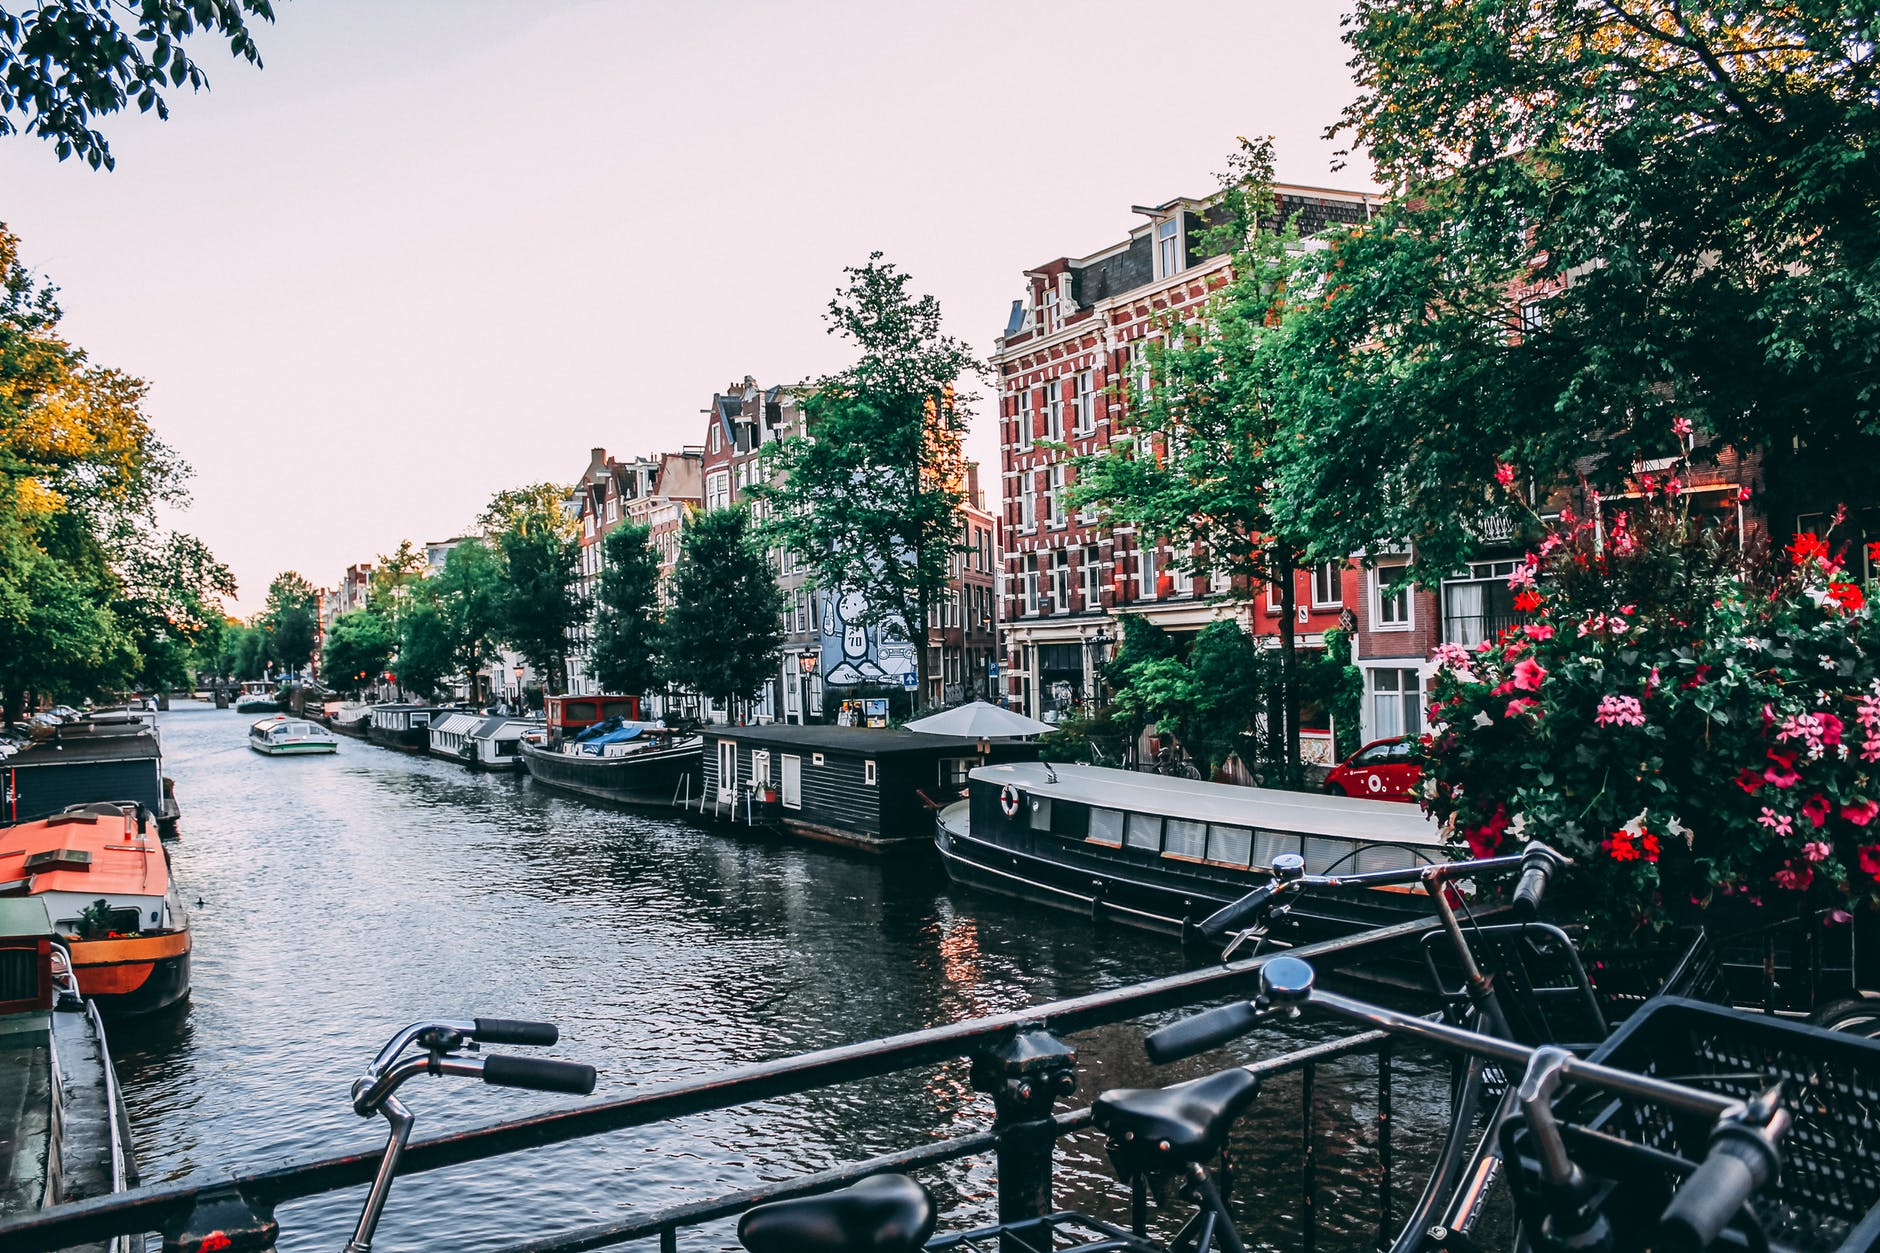 Top 10 Best Places to Visit in Netherlands